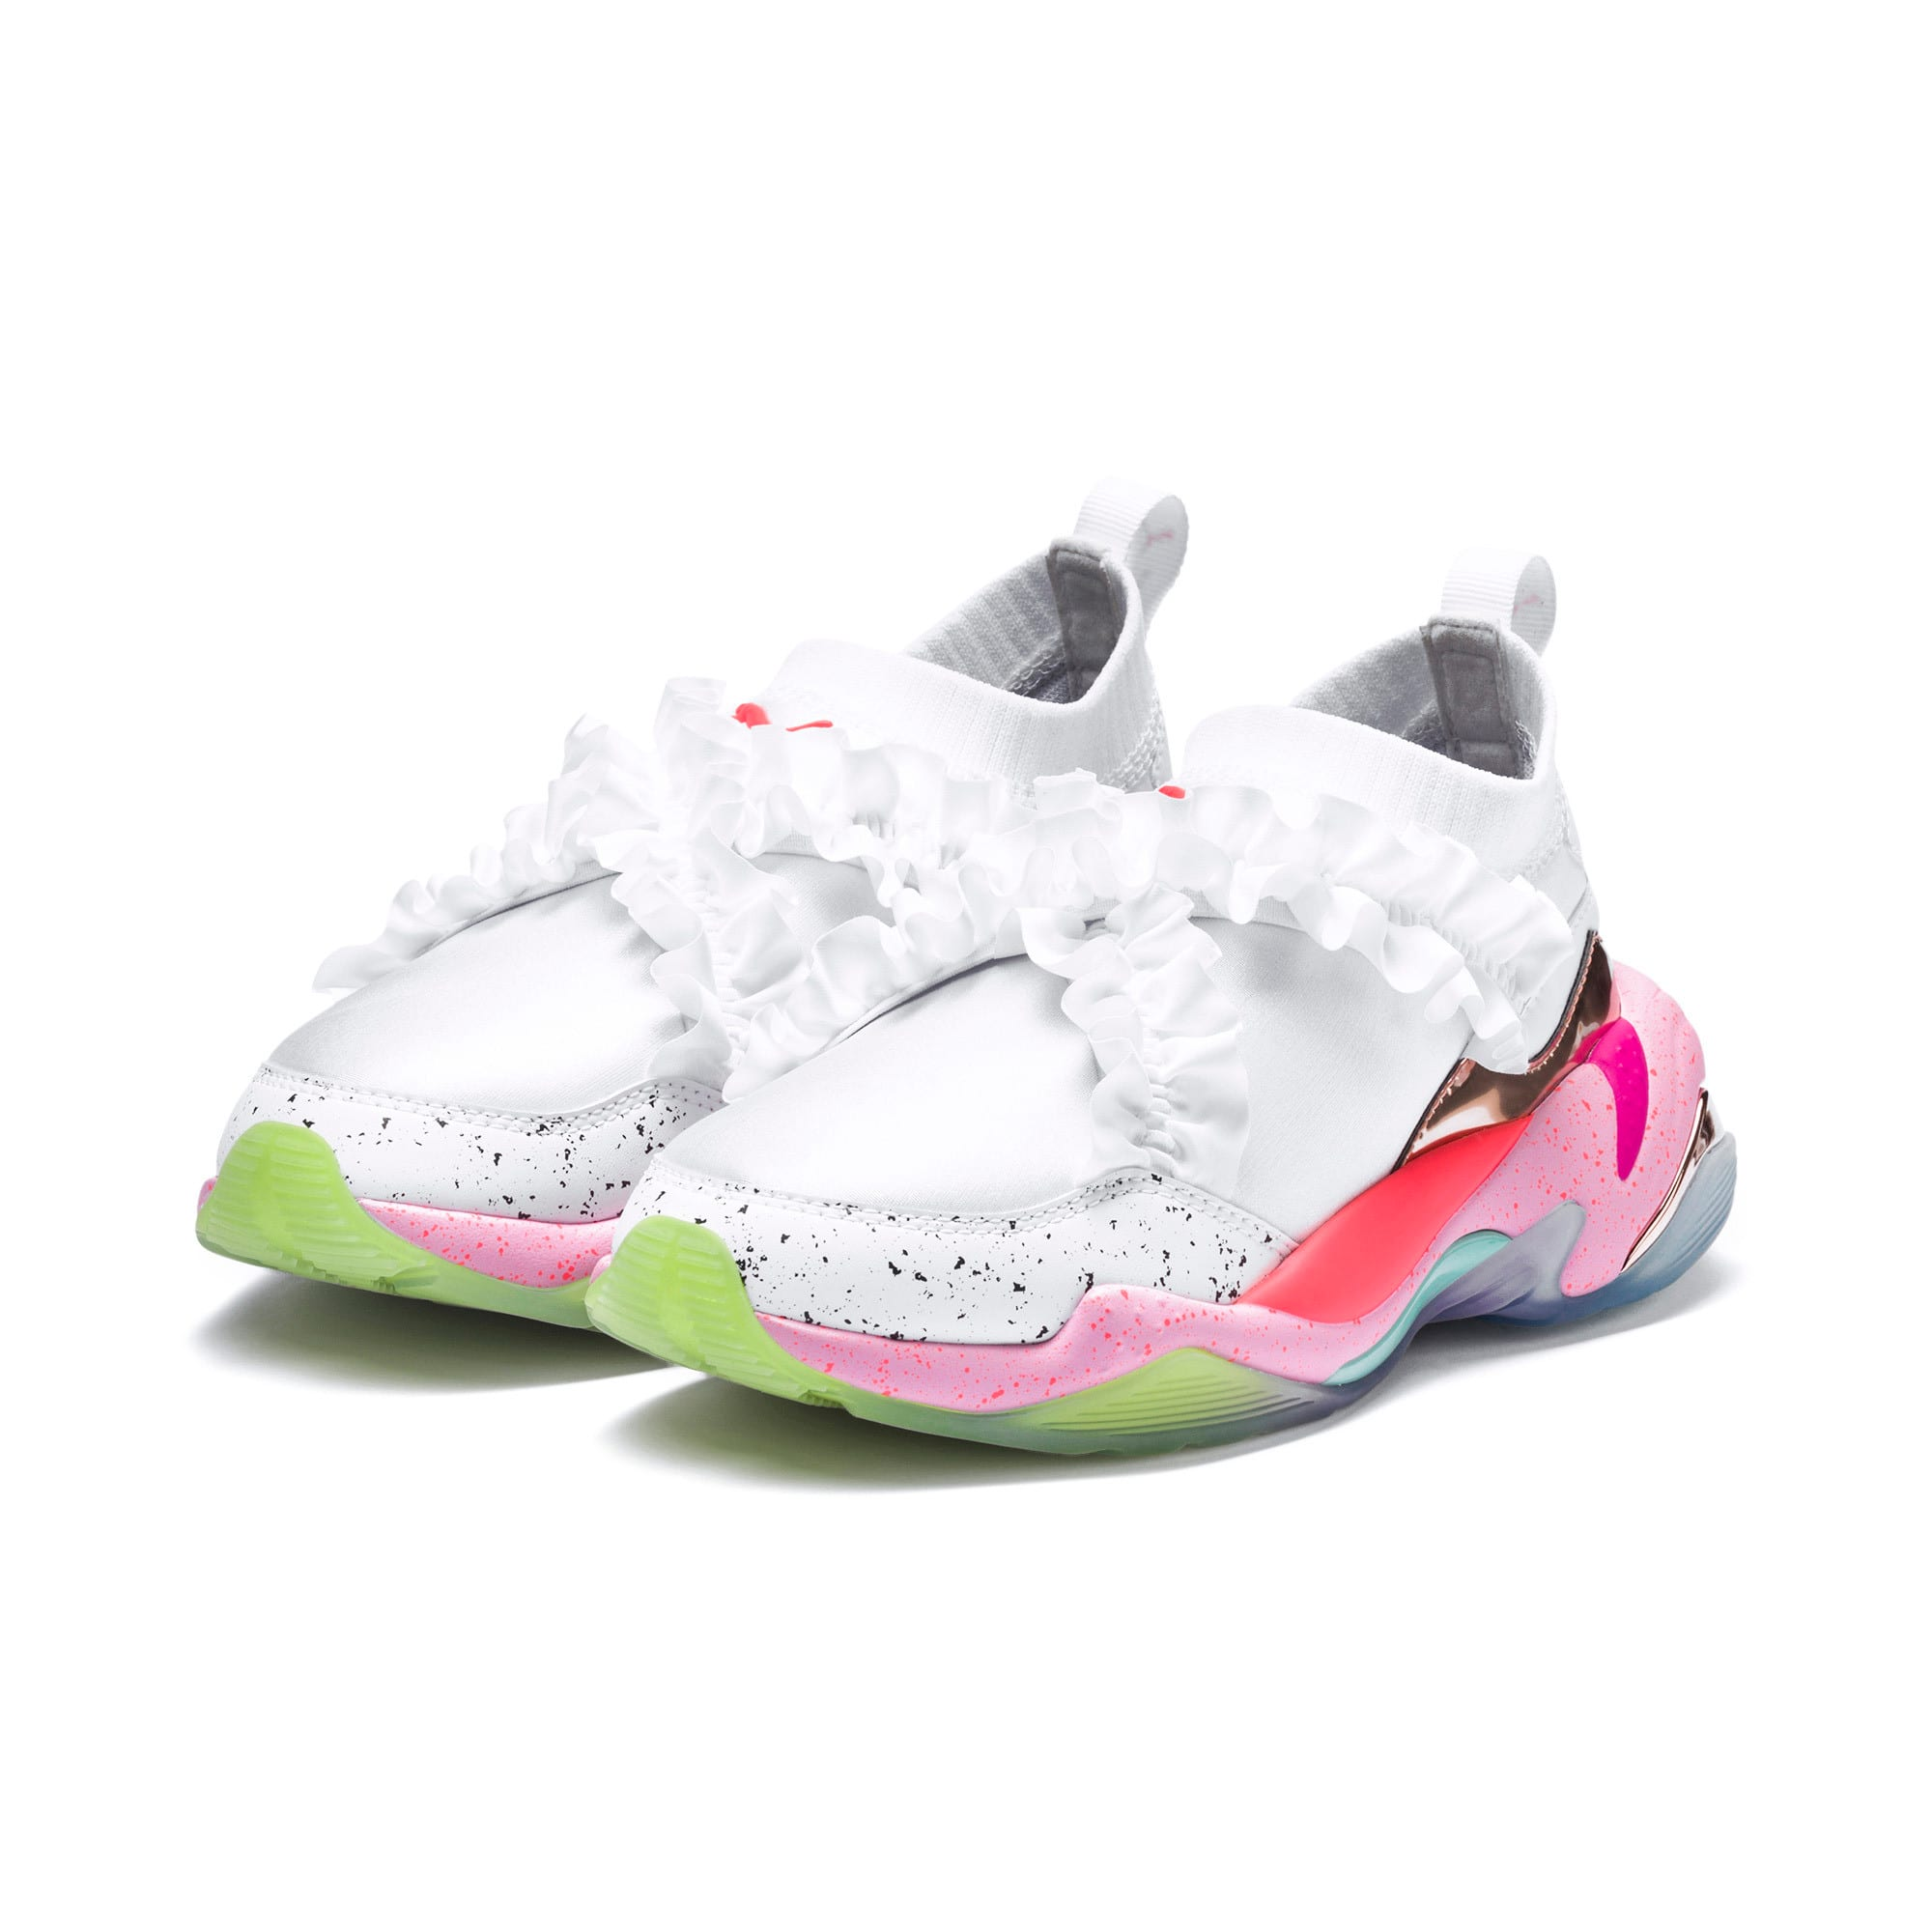 PUMA x SOPHIA WEBSTER Thunder Women's Sneakers, Puma White, large